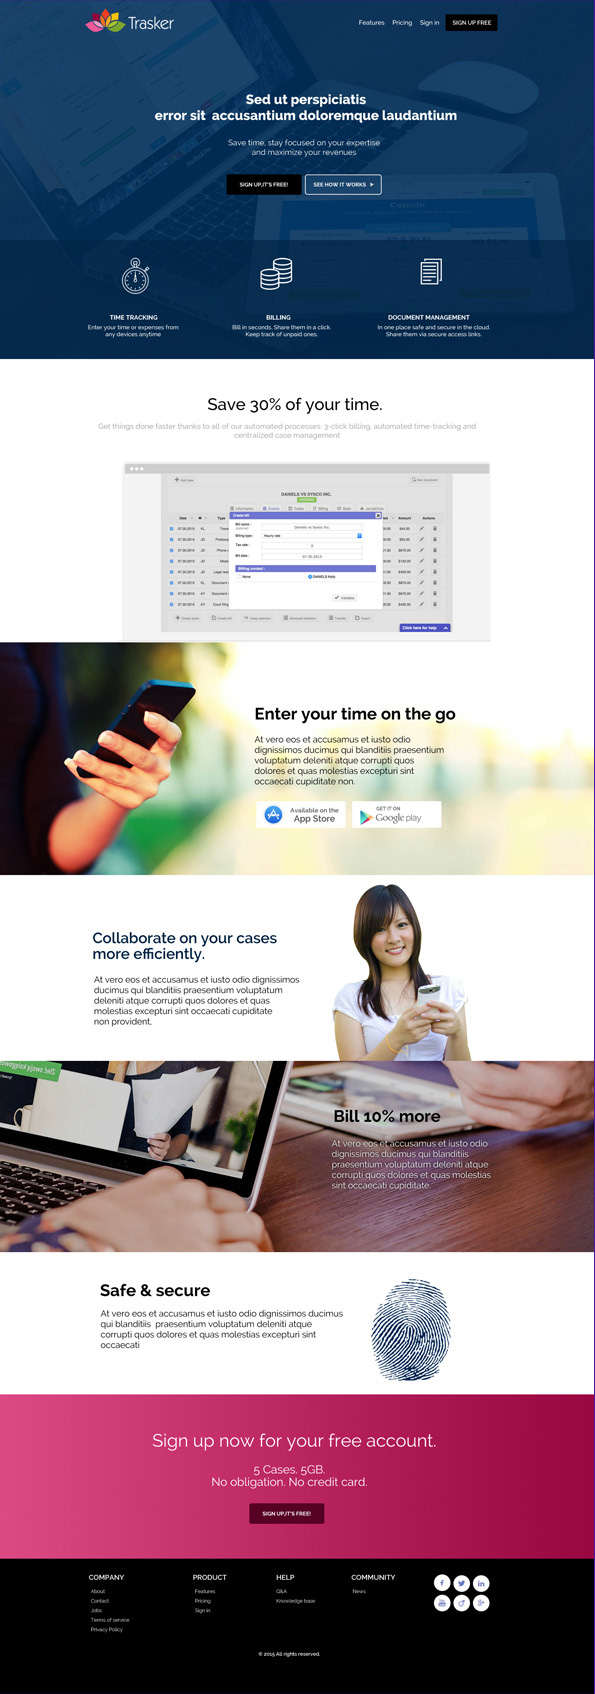 Landing page for product launch